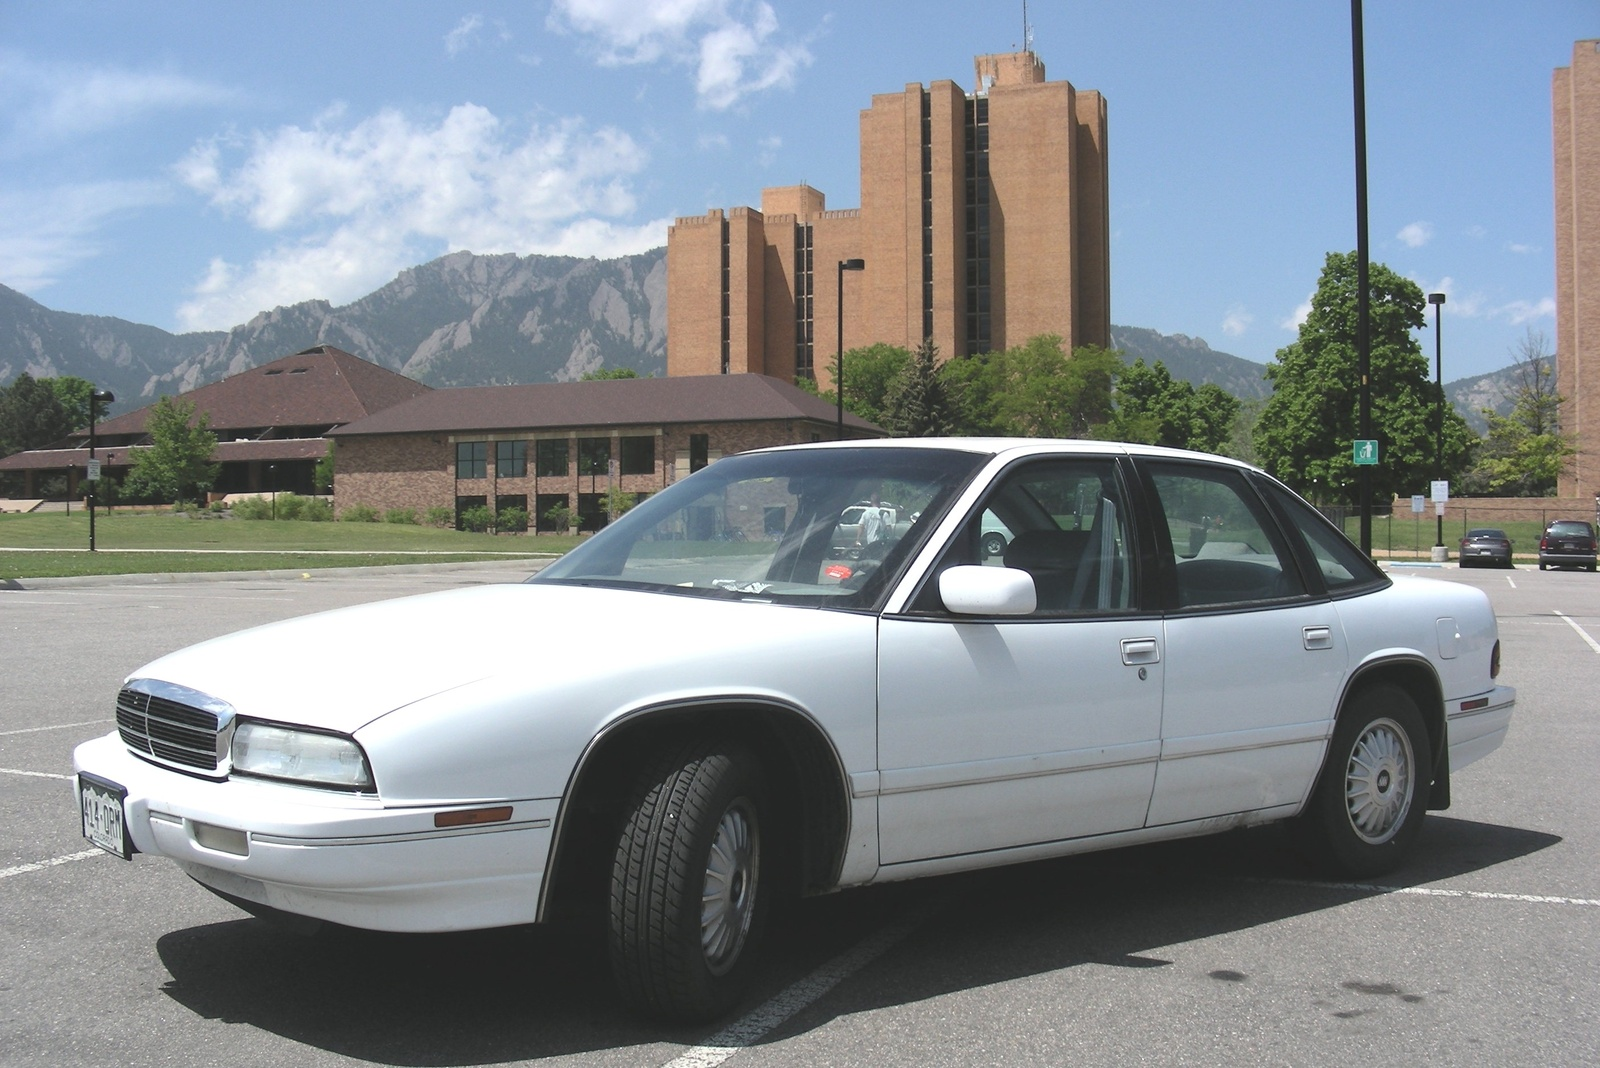 1993 Buick Regal #1